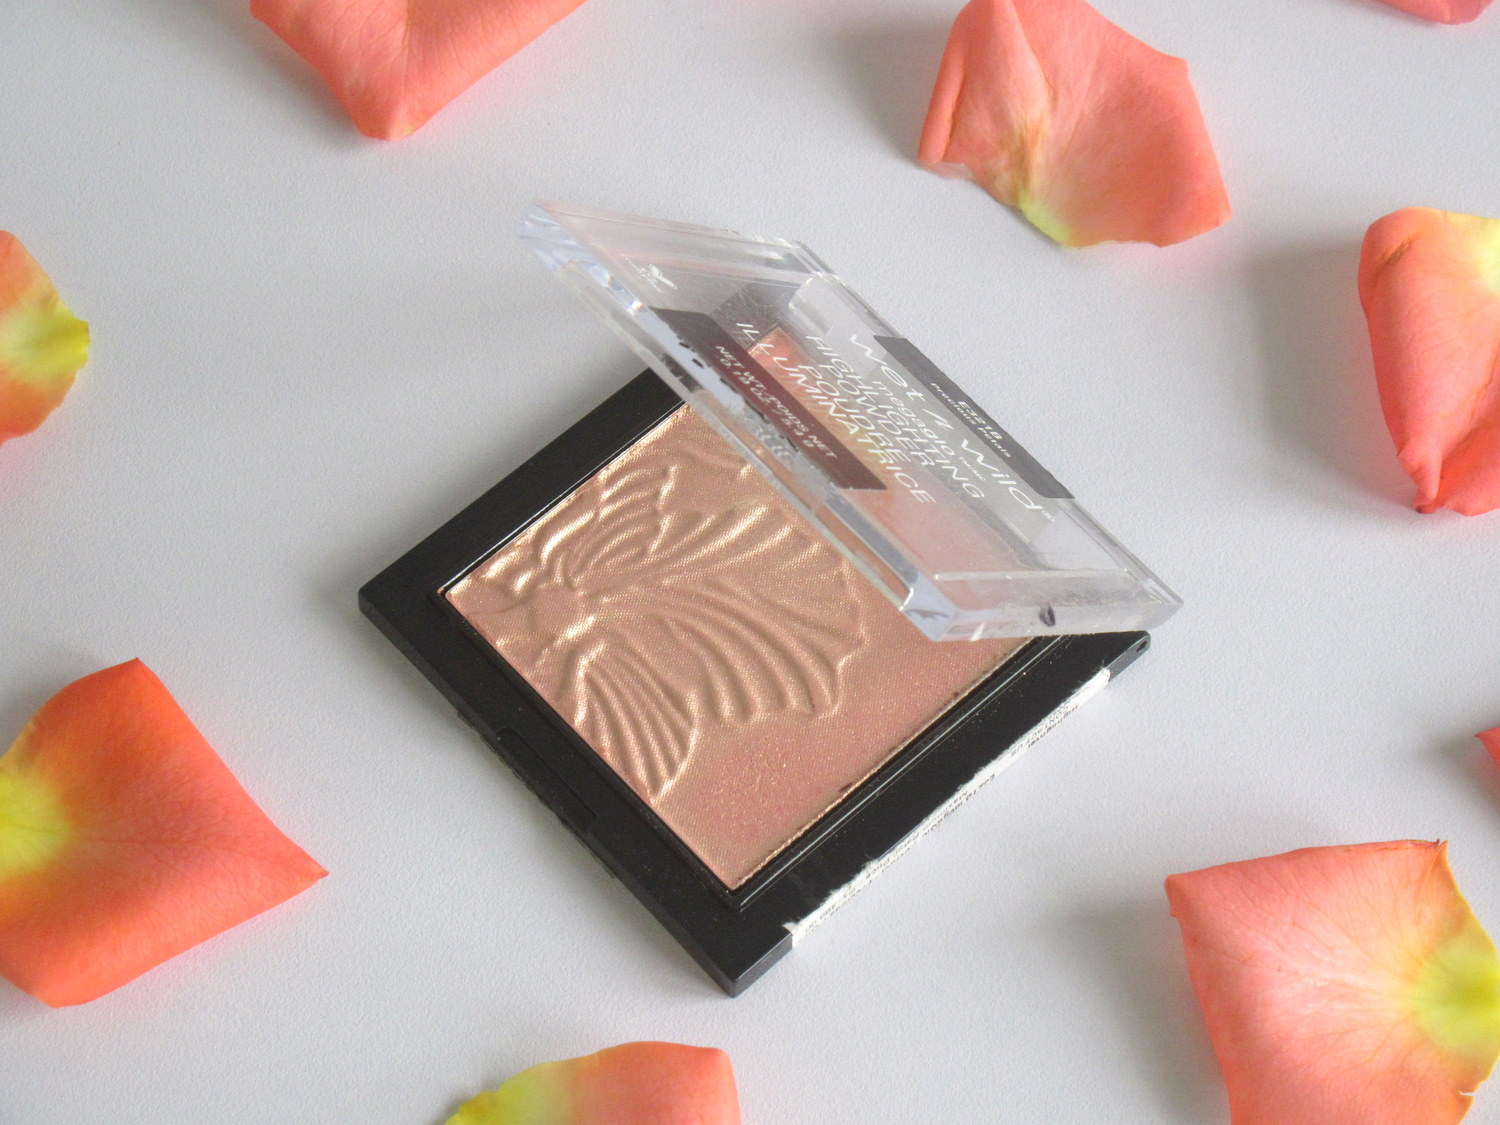 Wet n Wild MegaGlo Highlighting Powder Precious Petals, wet n wild precious petals